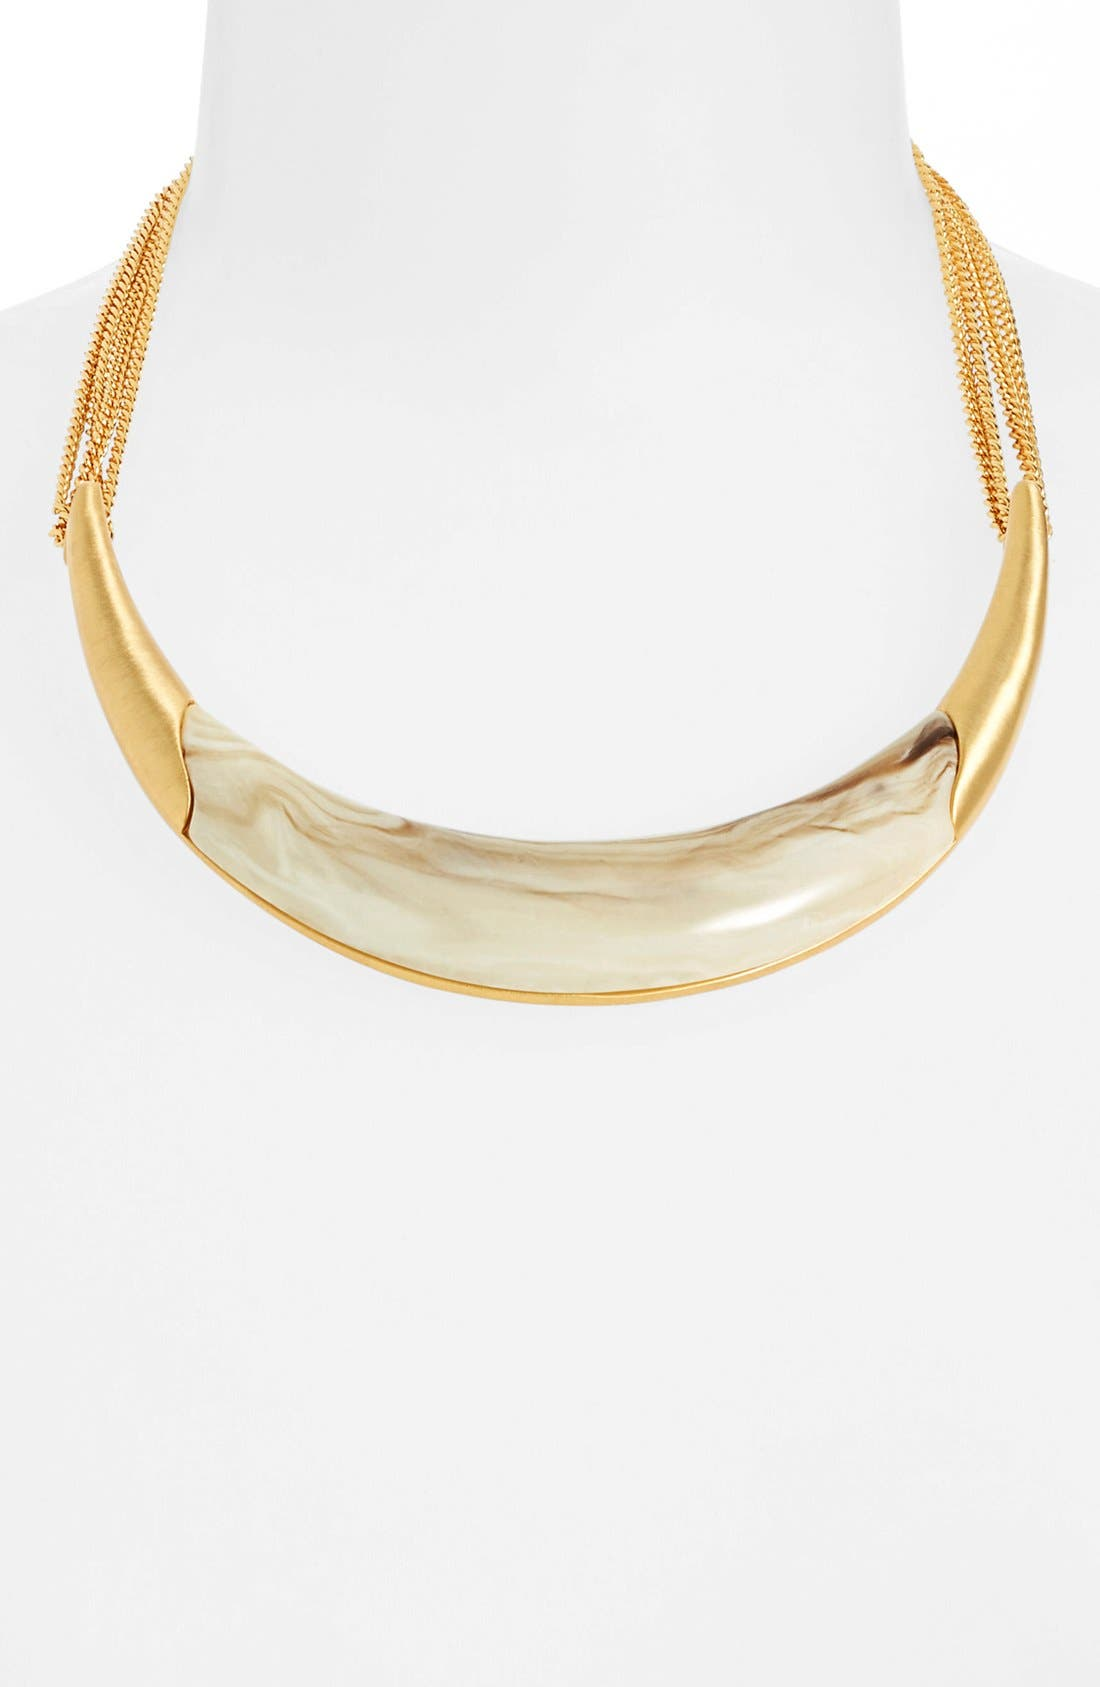 Main Image - Vince Camuto 'Thorns & Horns' Bib Necklace